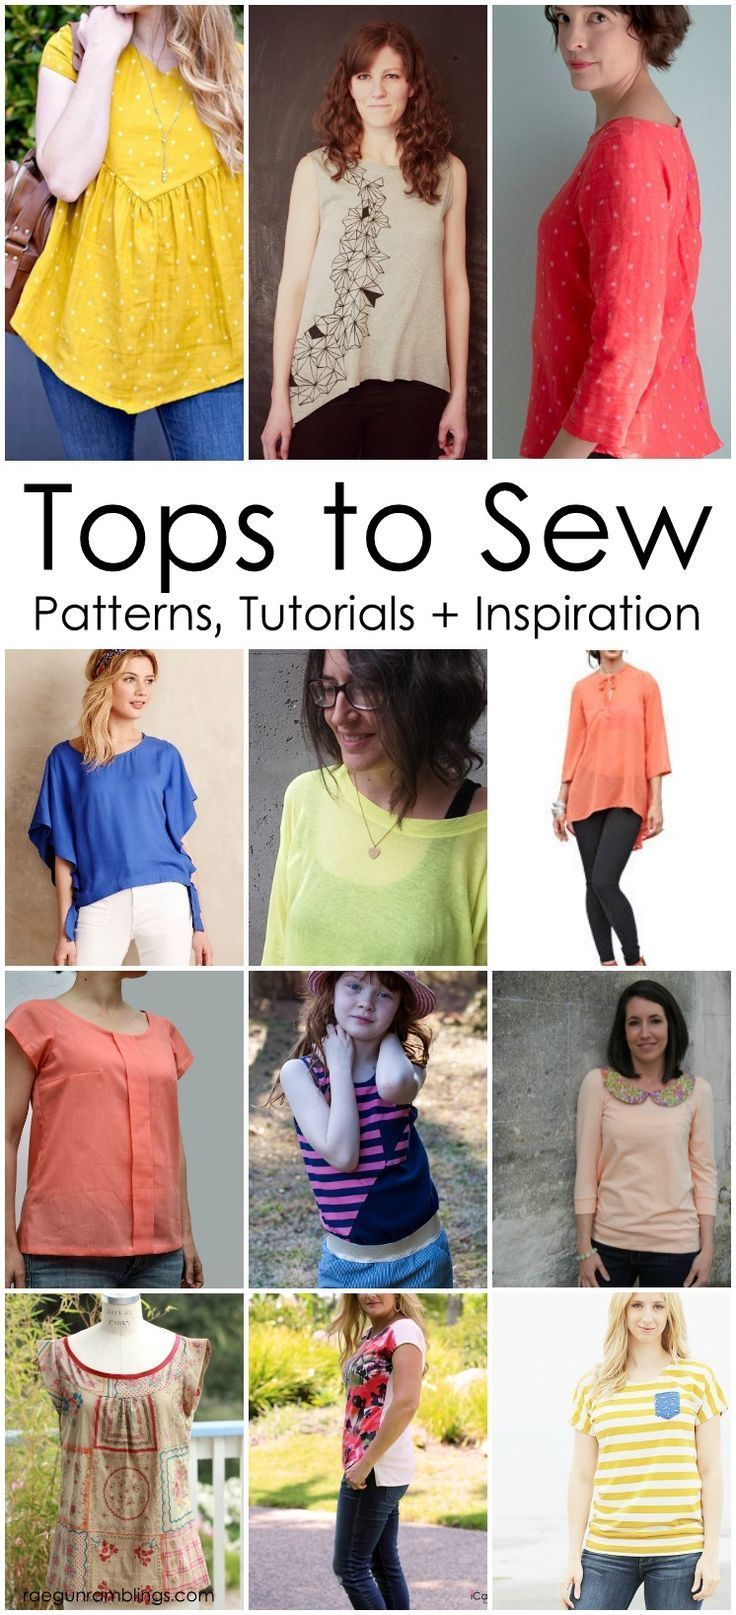 Must make all of these. Great list of sewing patterns and inspiration for women tops and shirts.